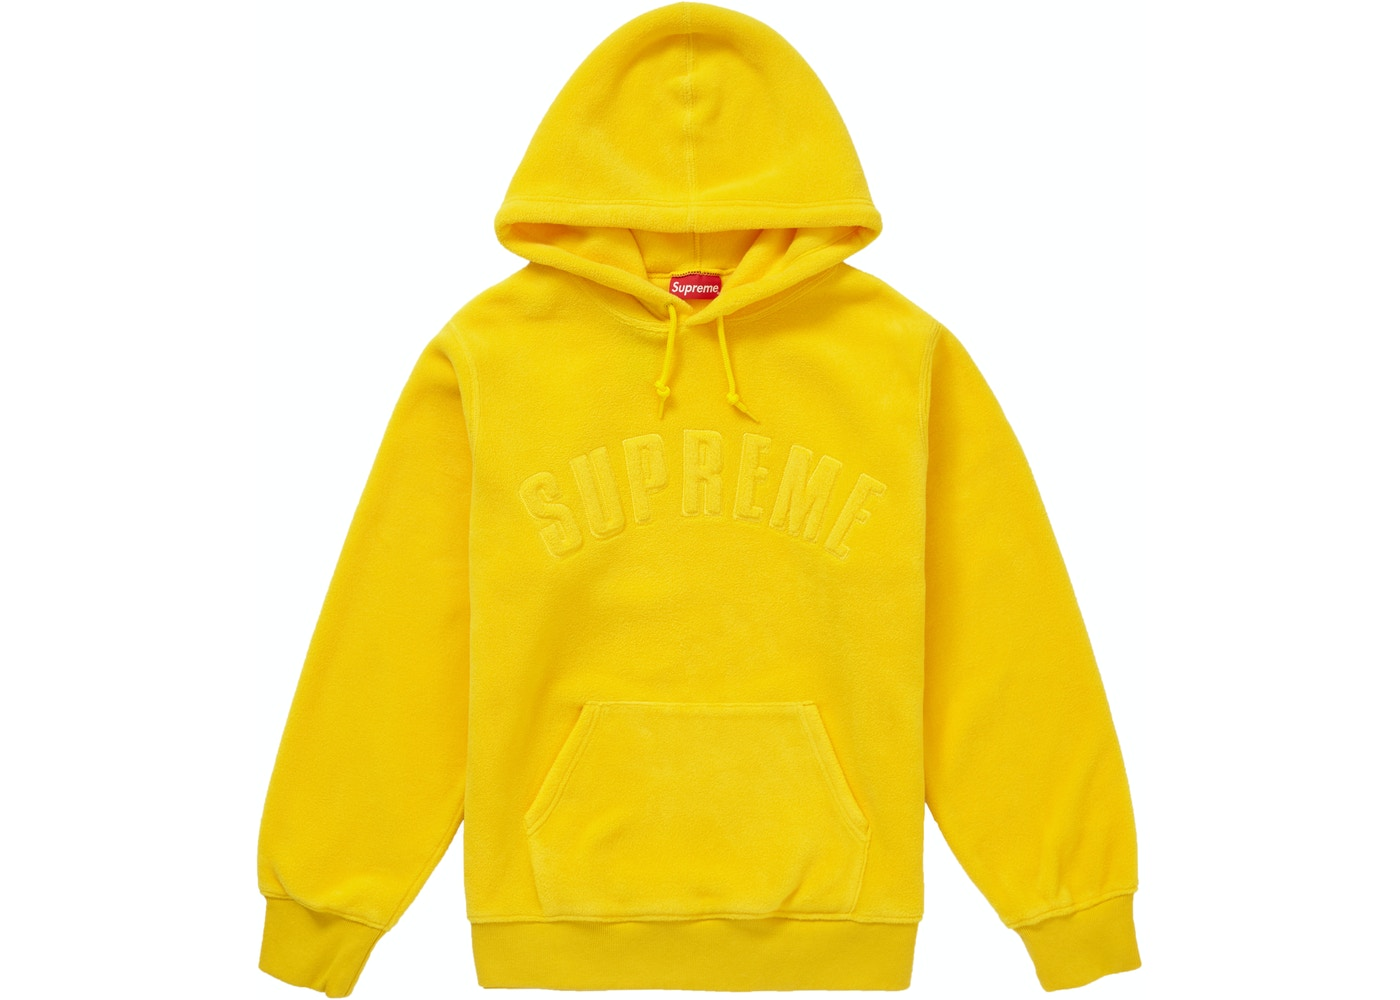 Or Ask Size S View All Bids Supreme Polartec Hooded Sweatshirt